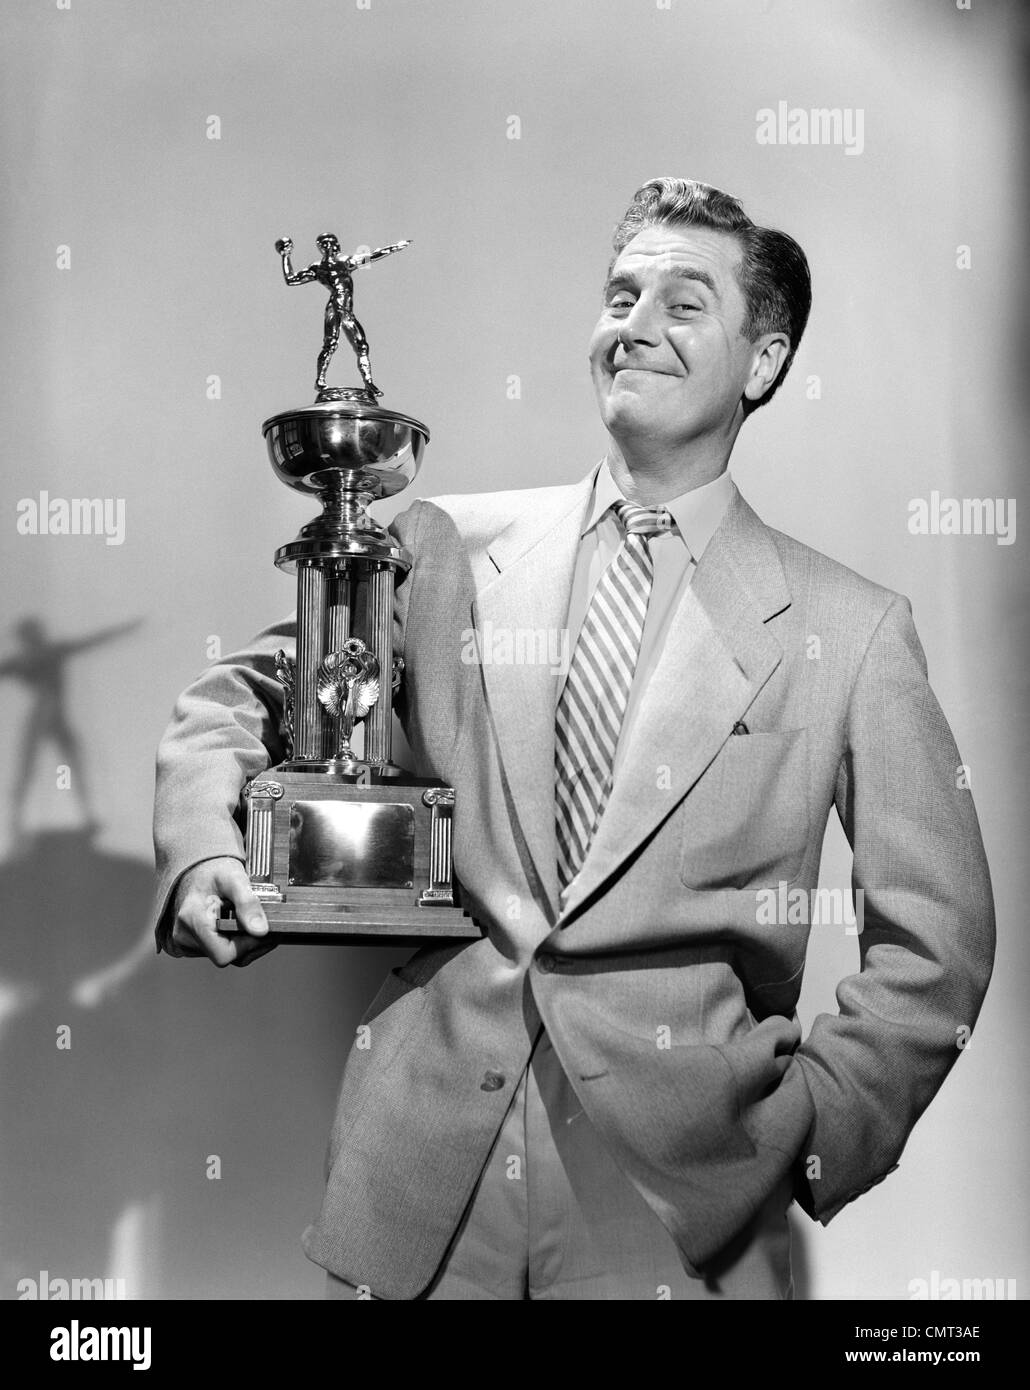 1950s 1960s PROUD MAN SMILING HOLDING A FOOTBALL TROPHY LOOKING AT CAMERA - Stock Image